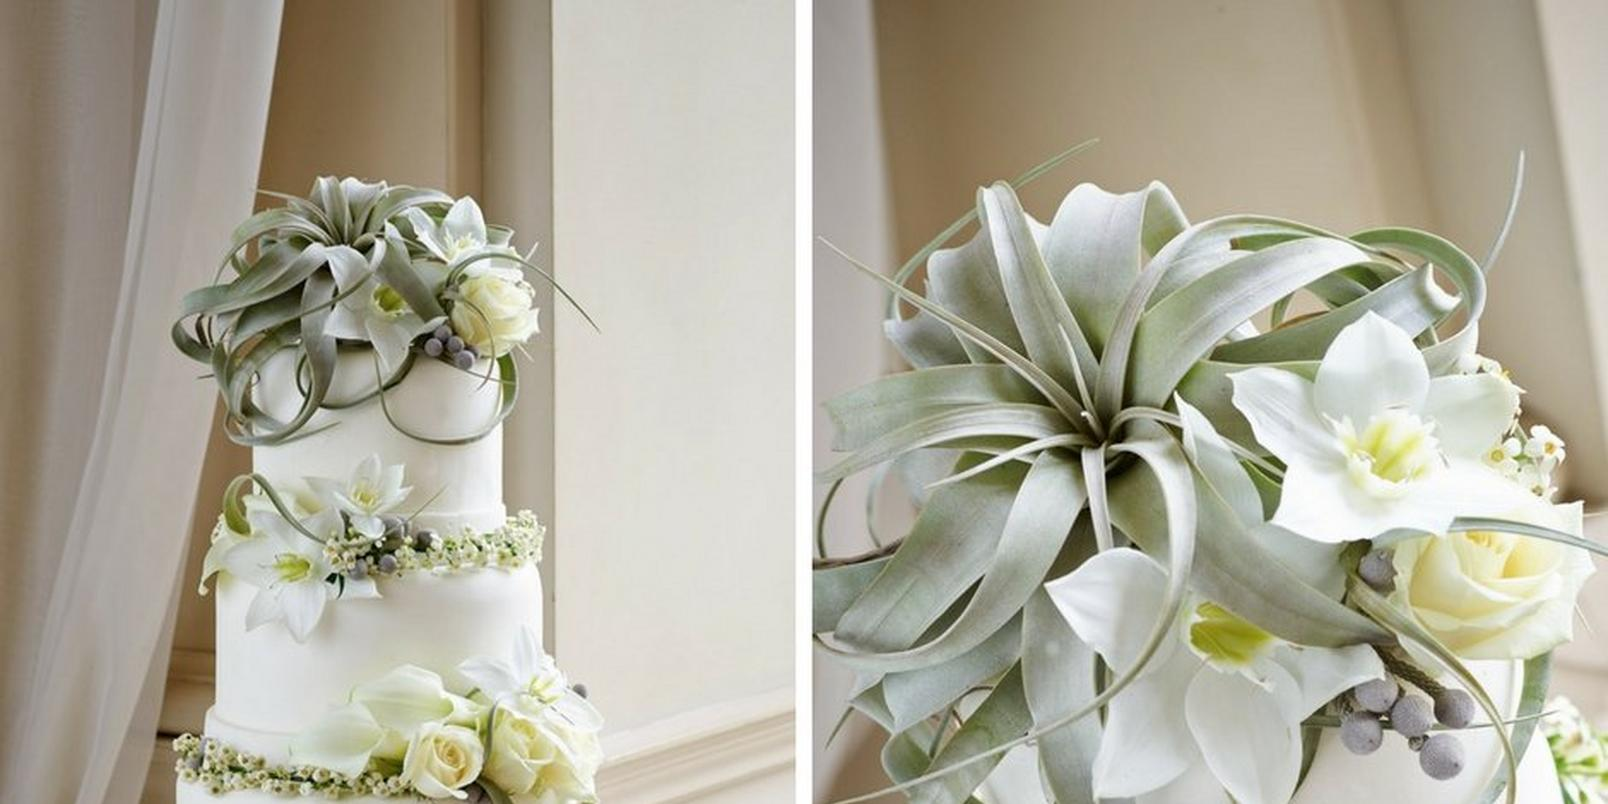 wedding-cake-ideas-with-real-flowers-5